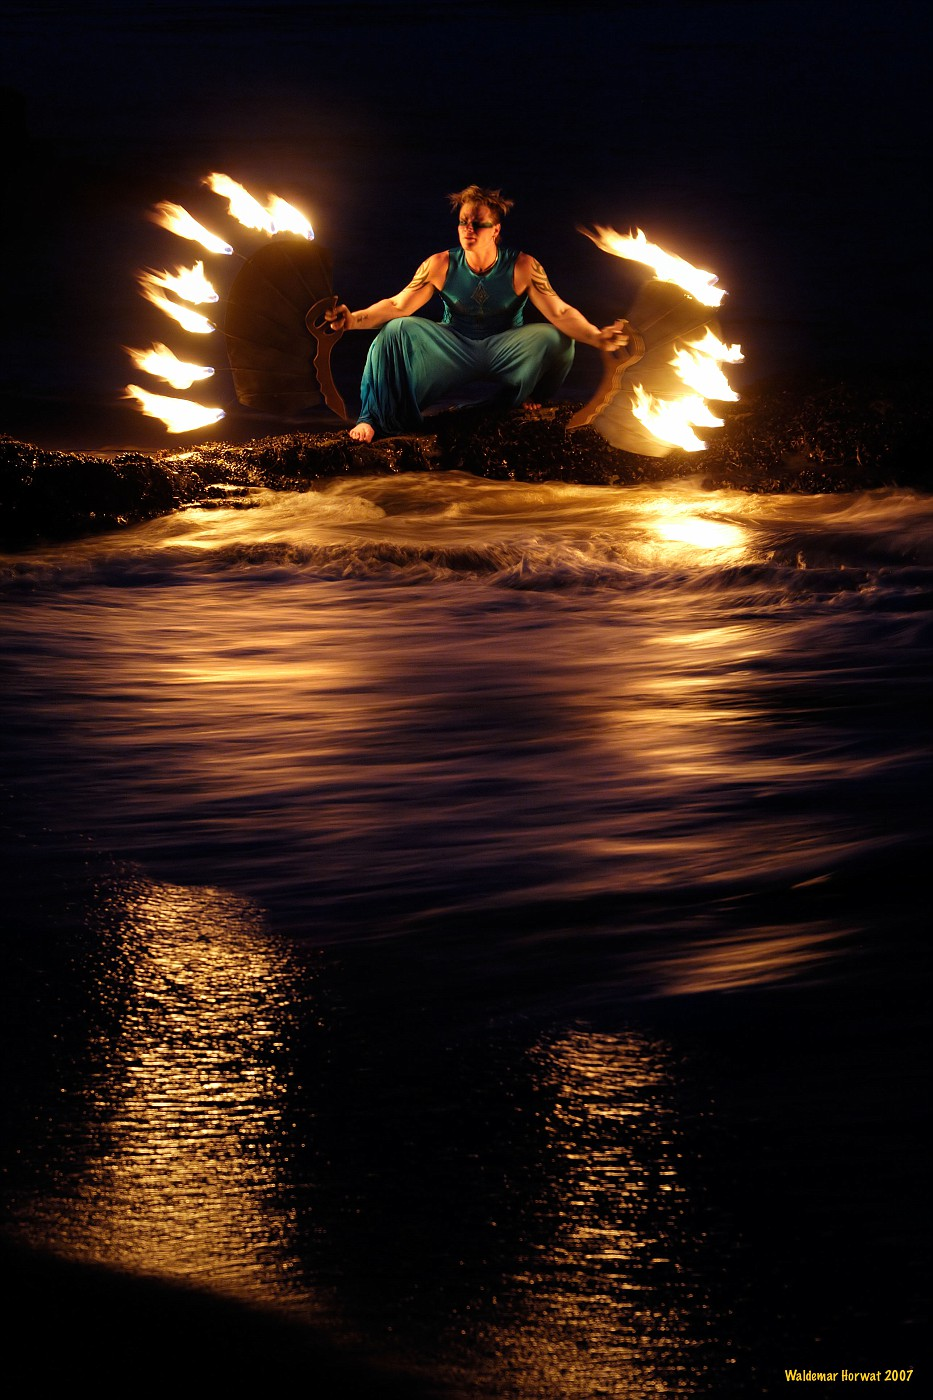 Fire in the Waves